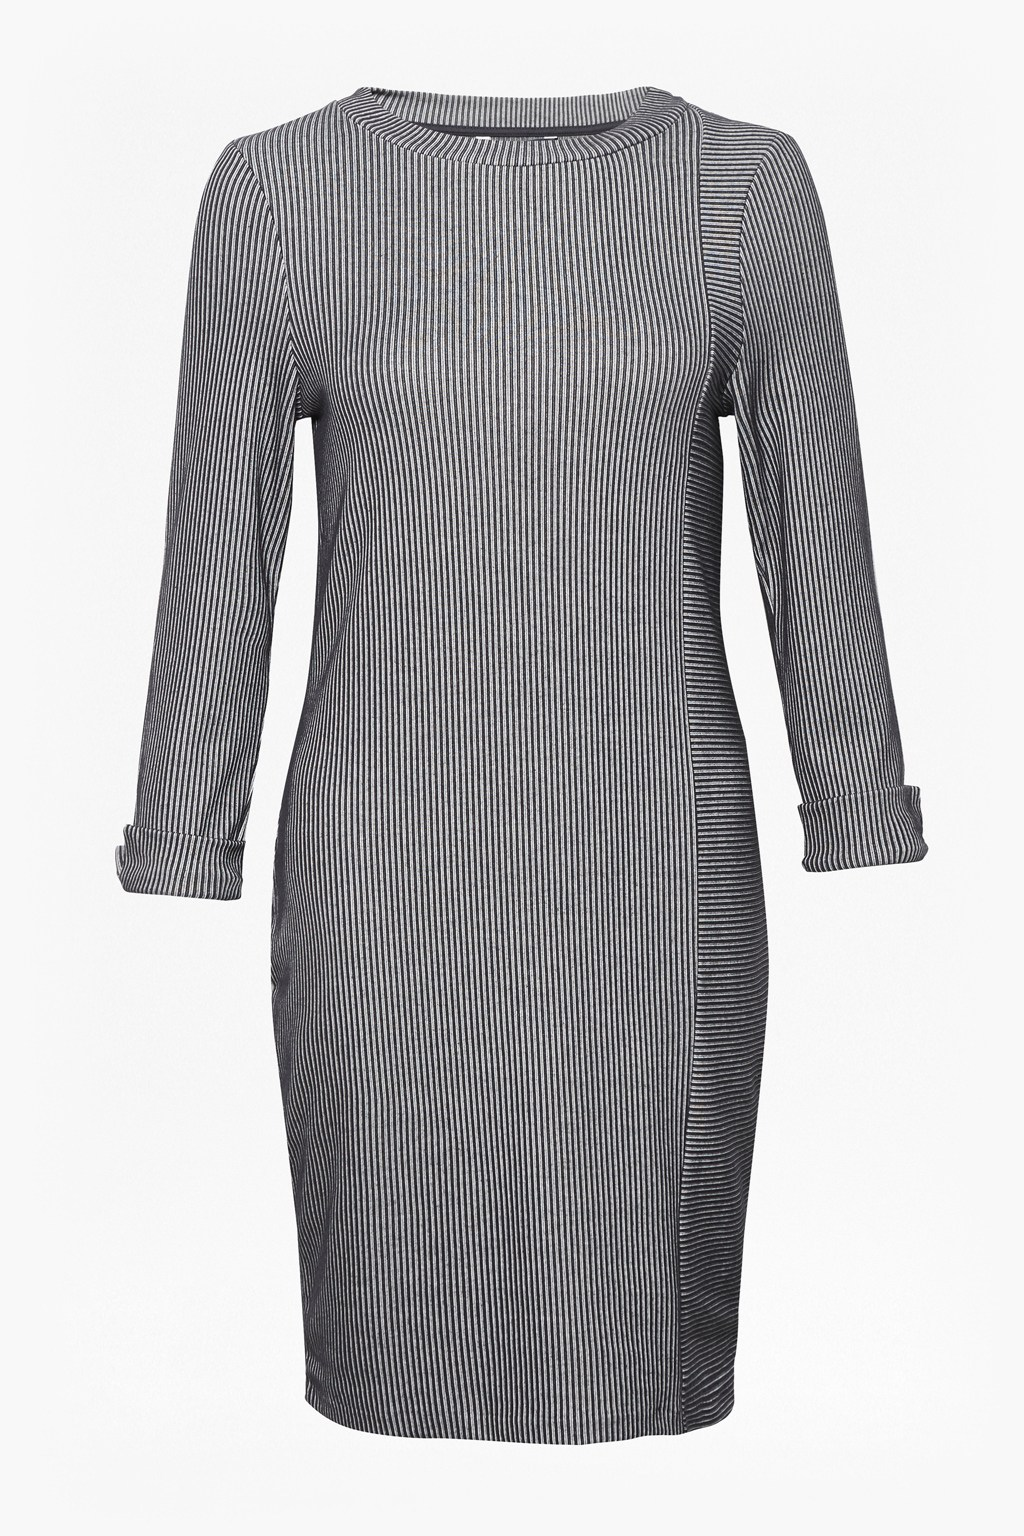 befac244f1 Sario Ribbed Jersey Round Neck Dress. loading images.